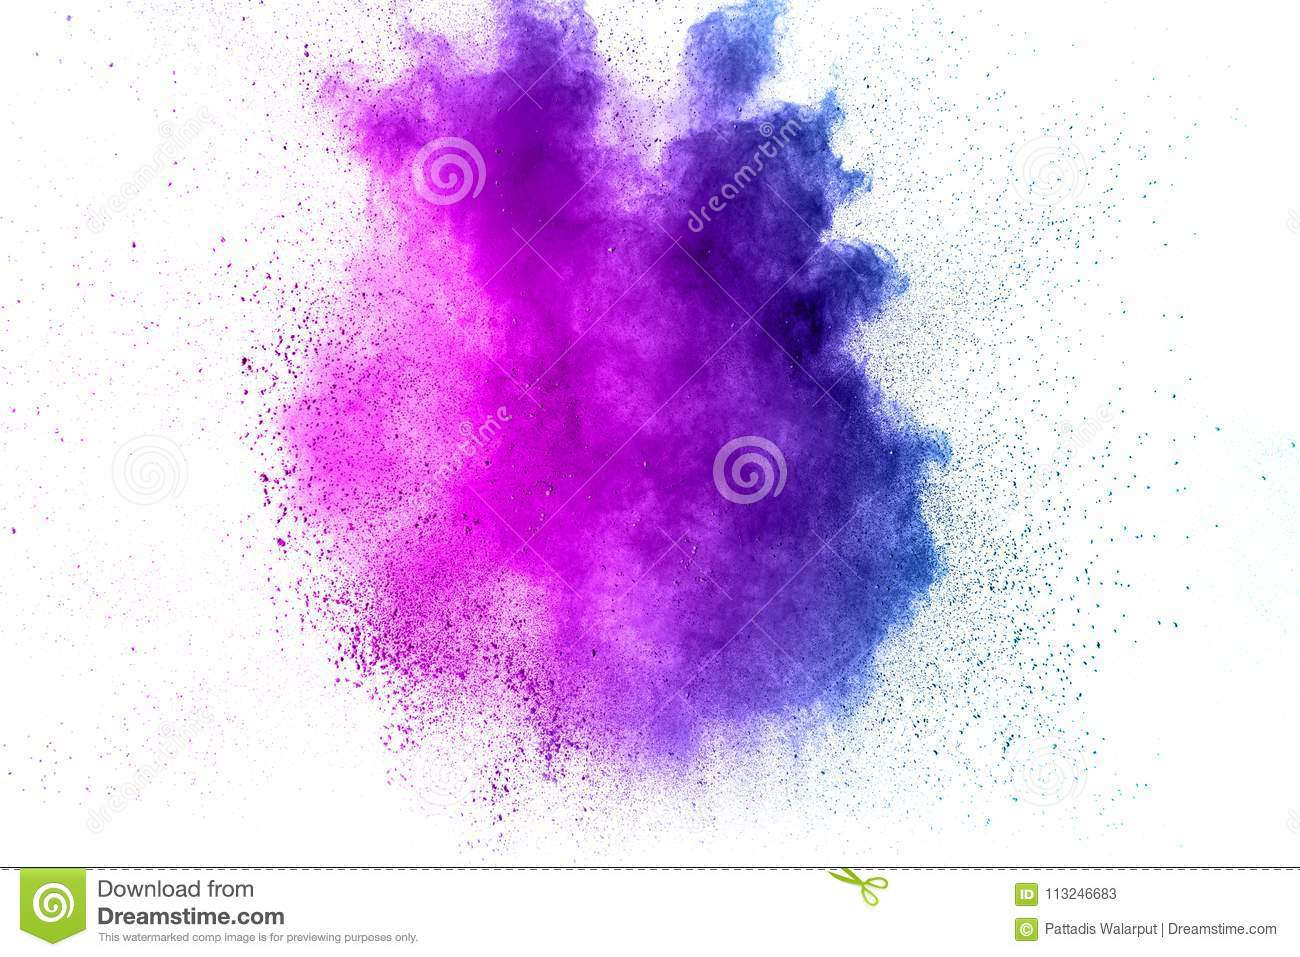 Abstract explosion of purple dust on white background.Abstract purple powder splatter on white background